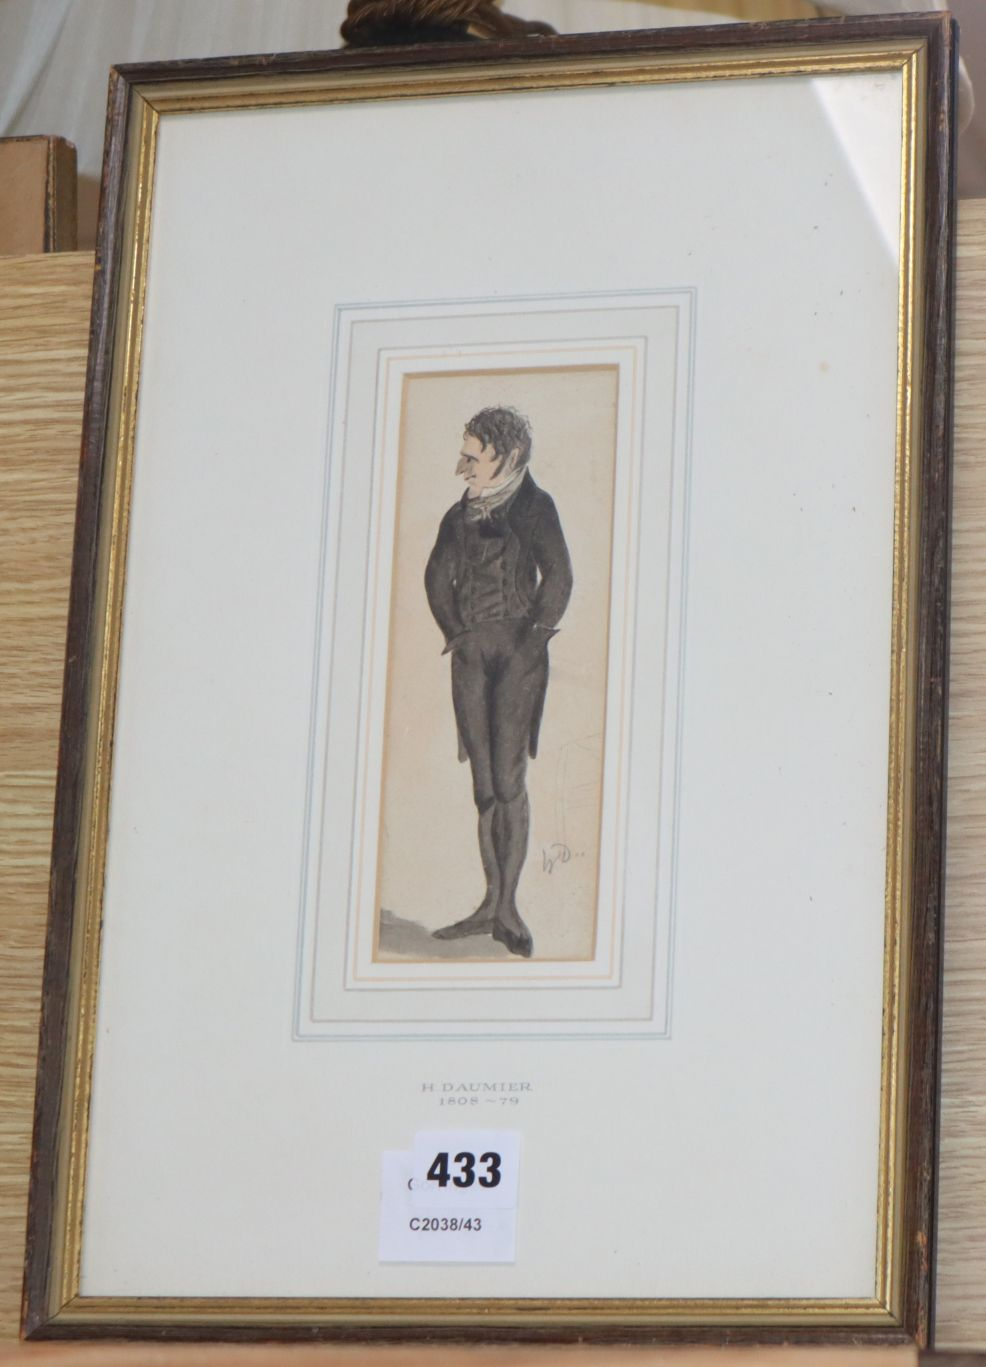 Lot 433 - Honore Daumier (1808-1879), ink and watercolour, Full length portrait of a gentleman, initialled, 18